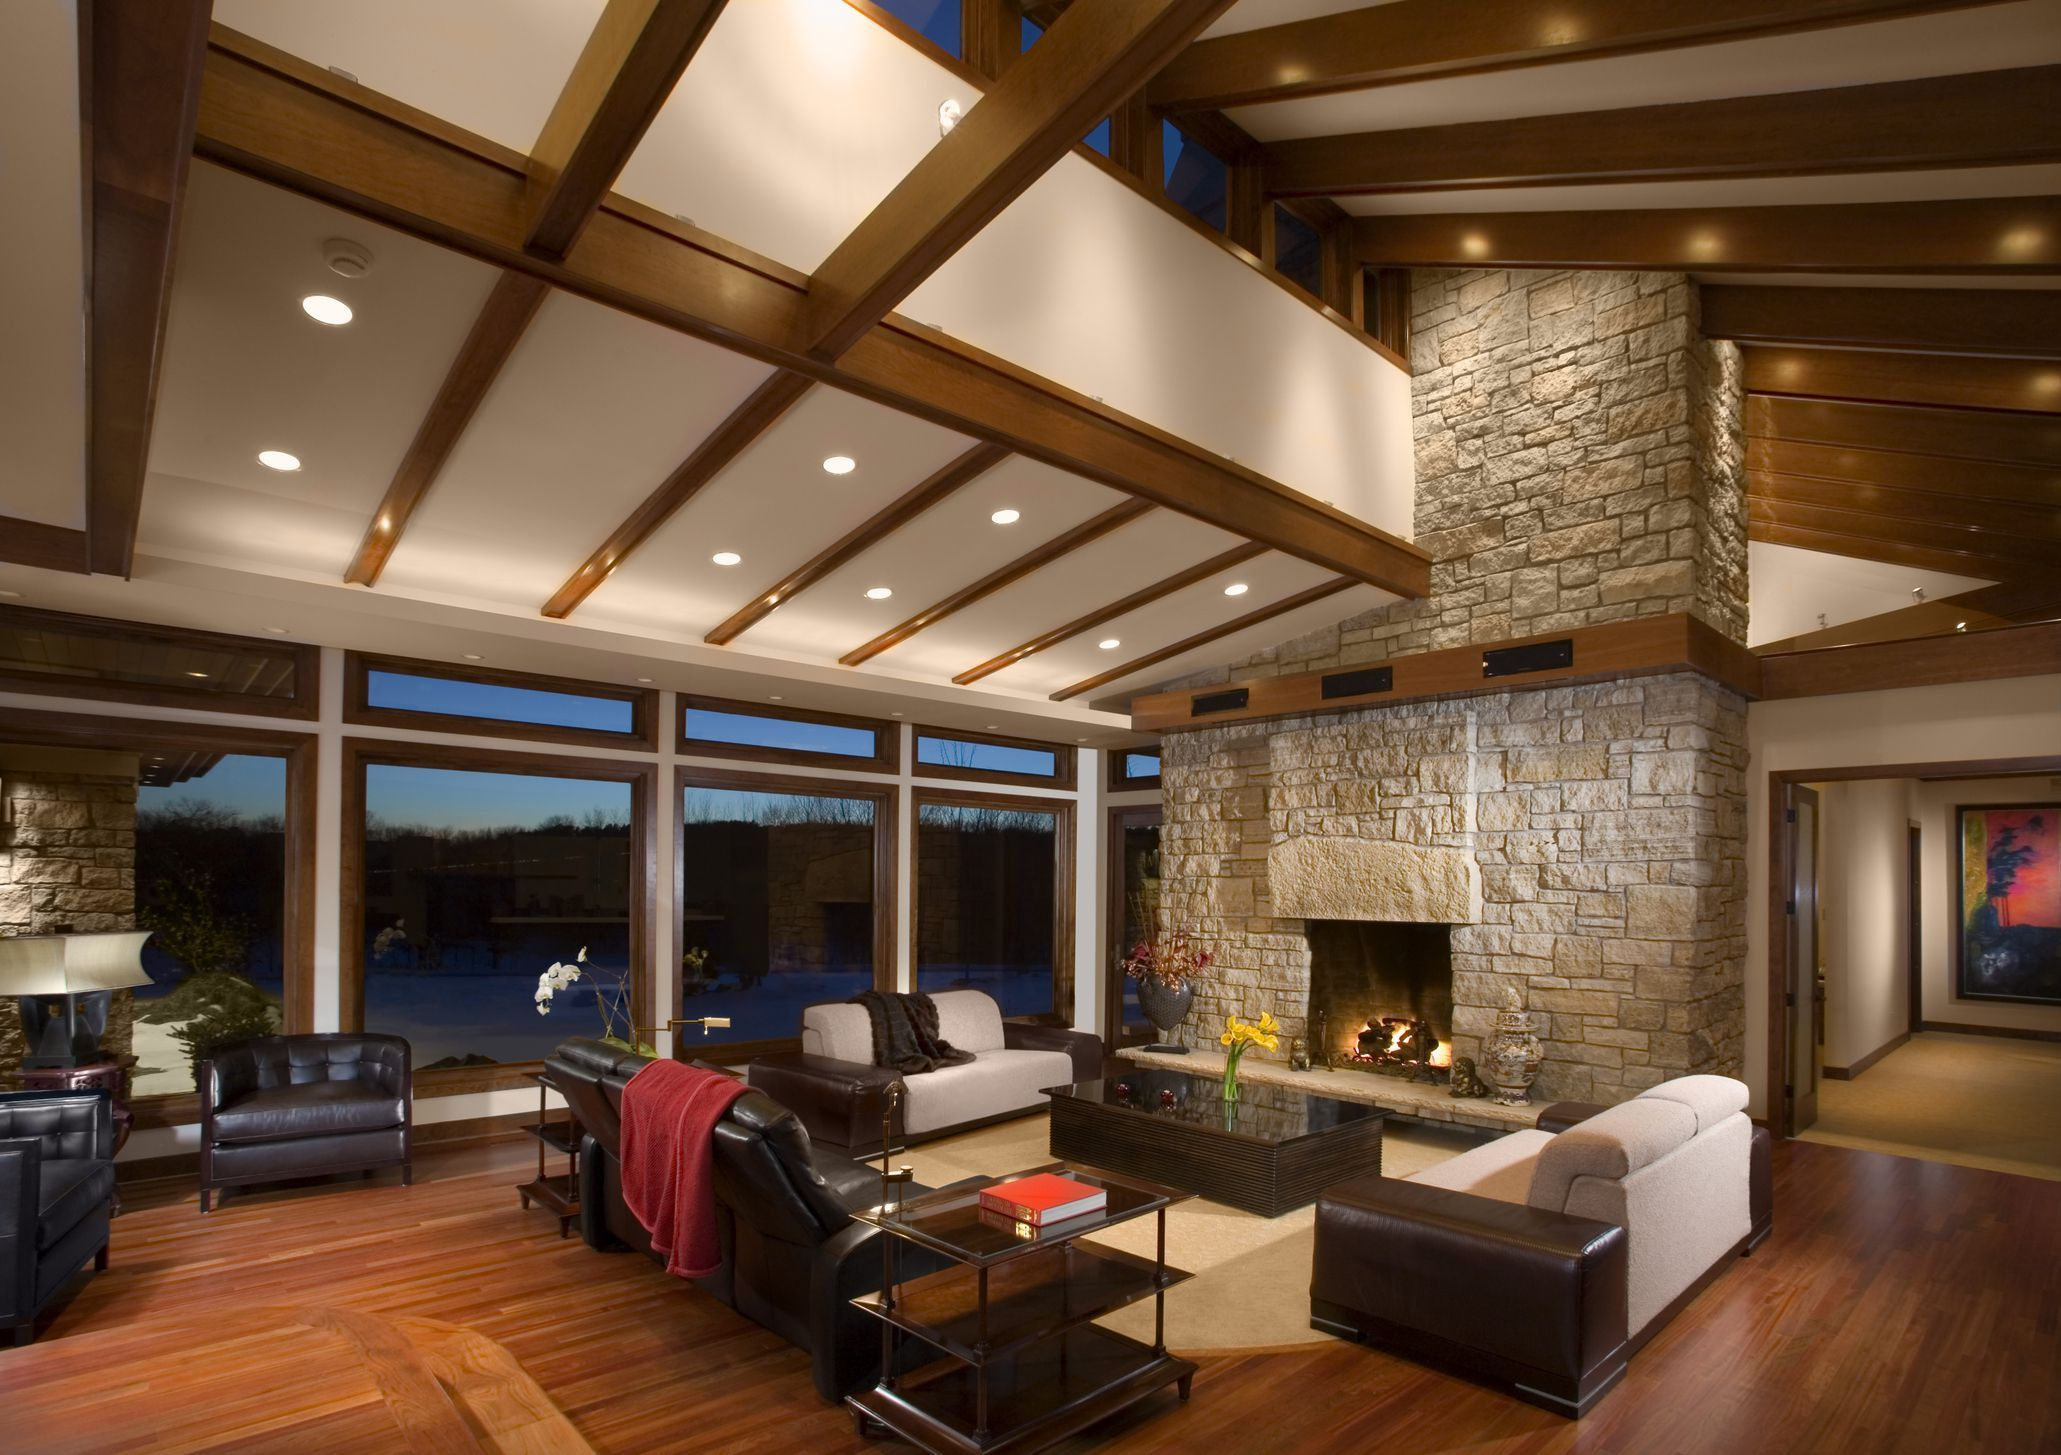 Pin By Vanessa Valentin On The Popp Compound Vaulted Ceiling Living Room Vaulted Ceiling Lighting Rustic Ceiling